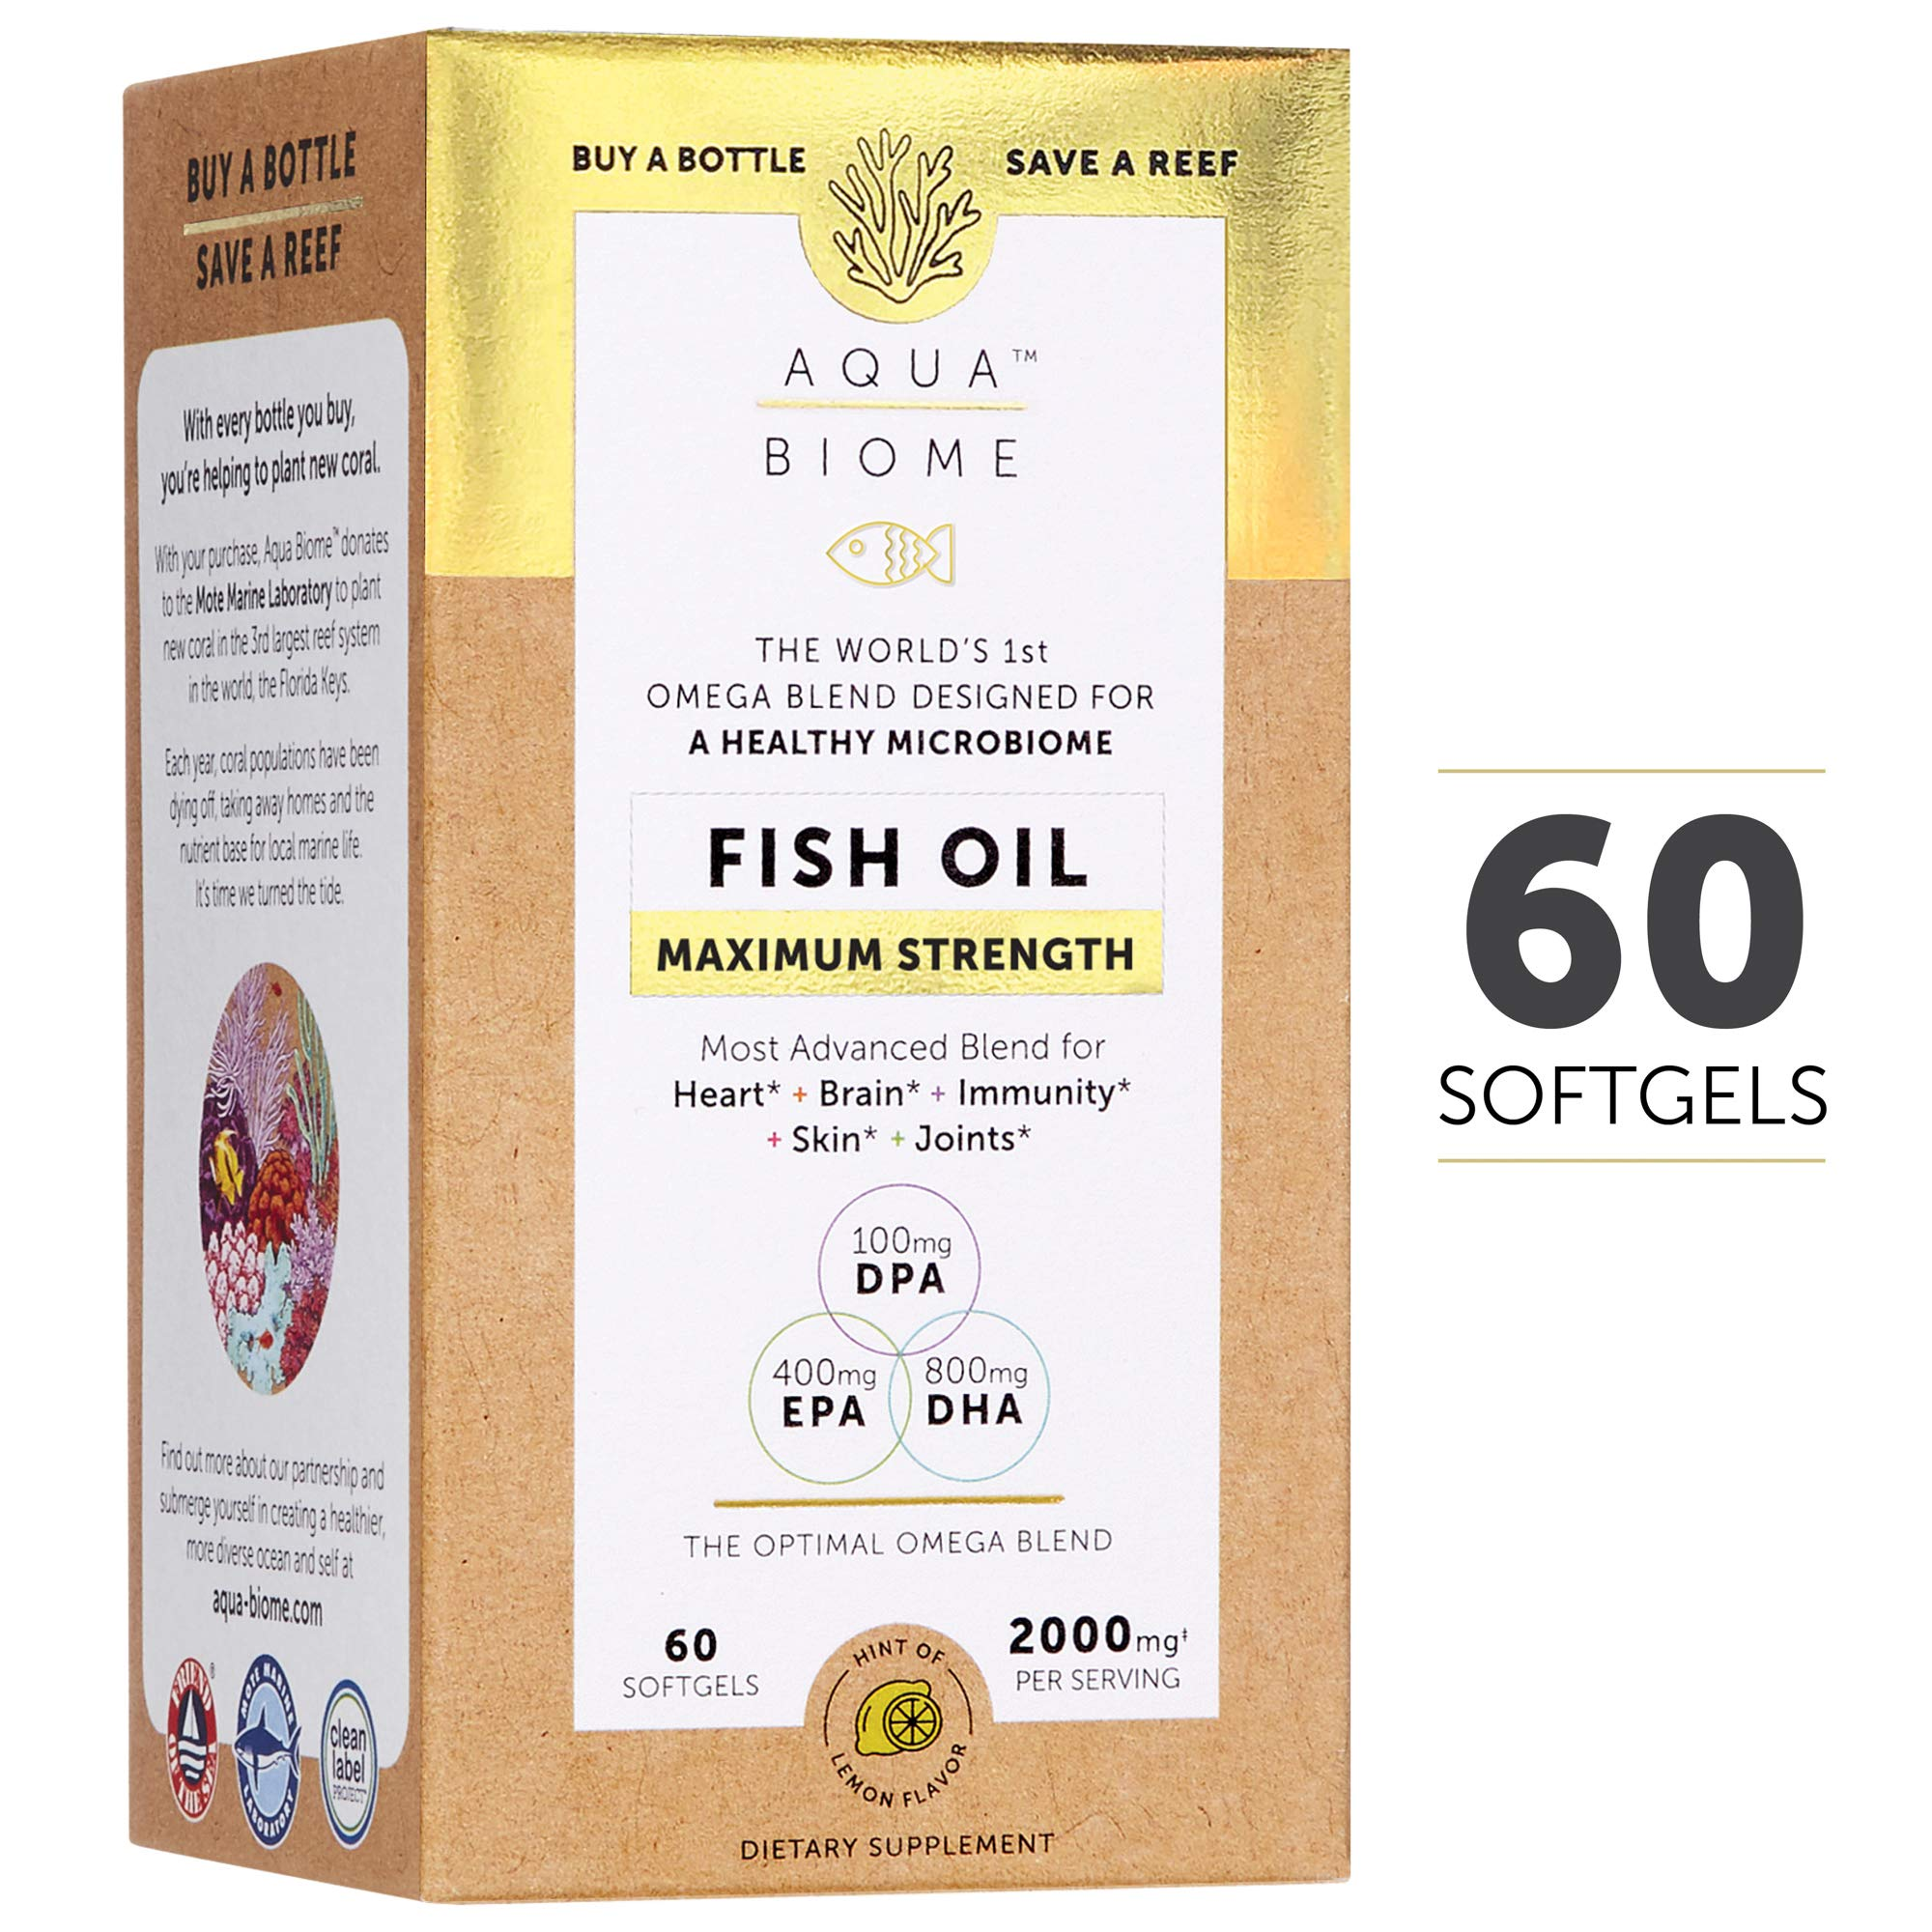 Aqua Biome by Enzymedica, Fish Oil Maximum Strength, Complete Omega 3 Supplement, DHA, EPA, DPA, Gluten Free & Non-GMO, 60 softgels (30 servings) by Enzymedica